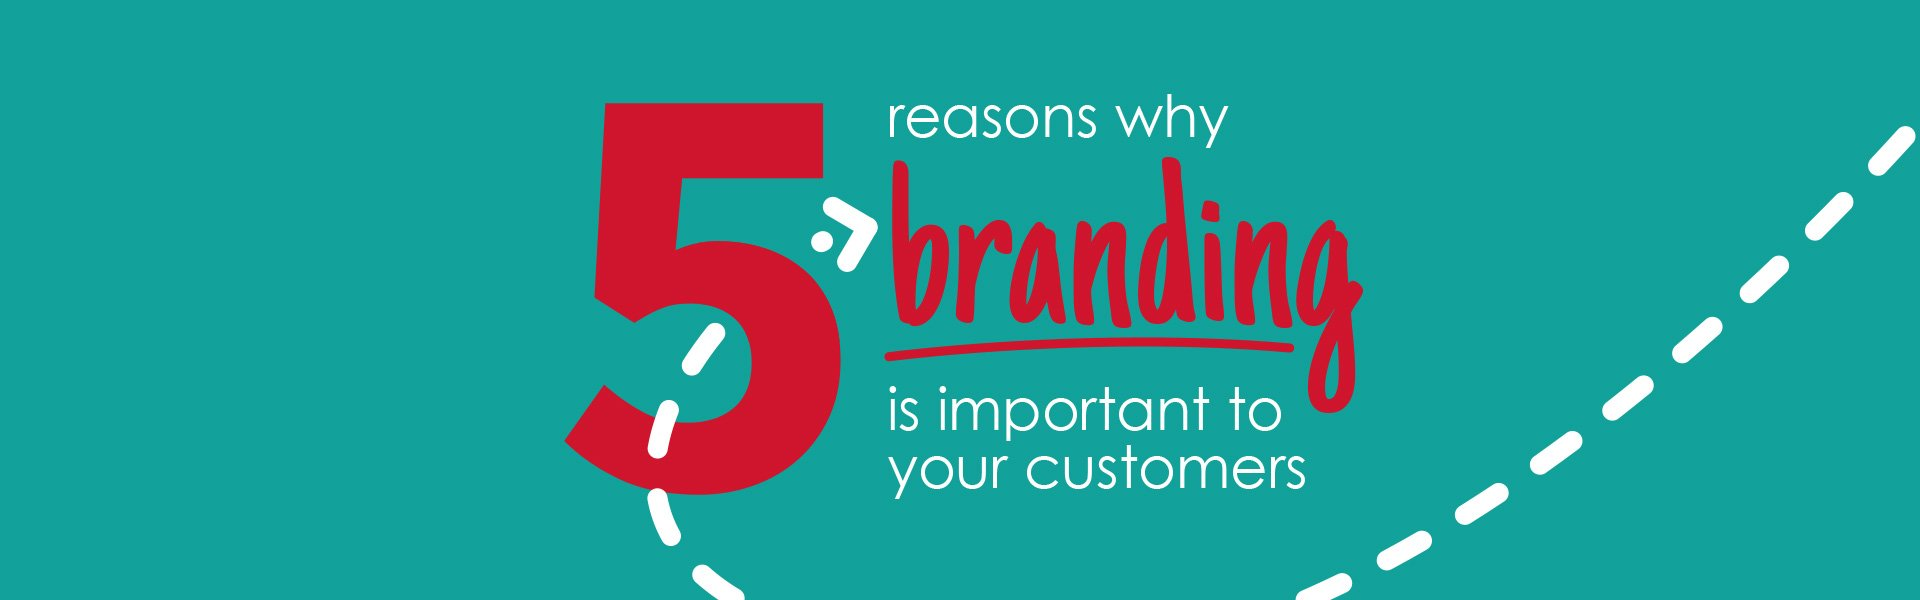 5 reasons branding is important